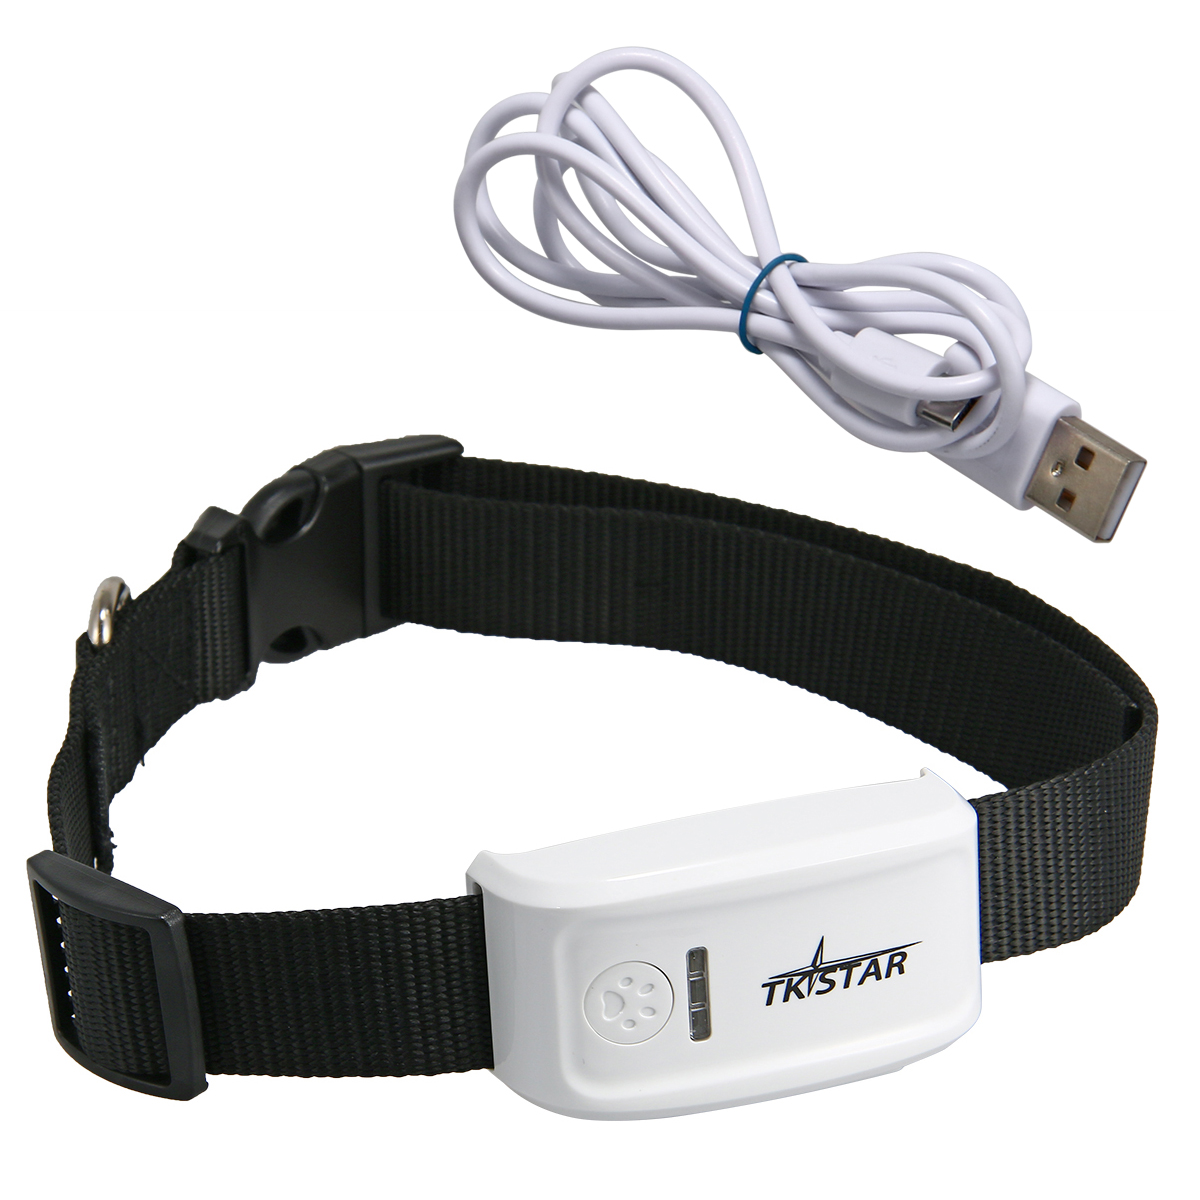 GPRS Tracking System for Pets